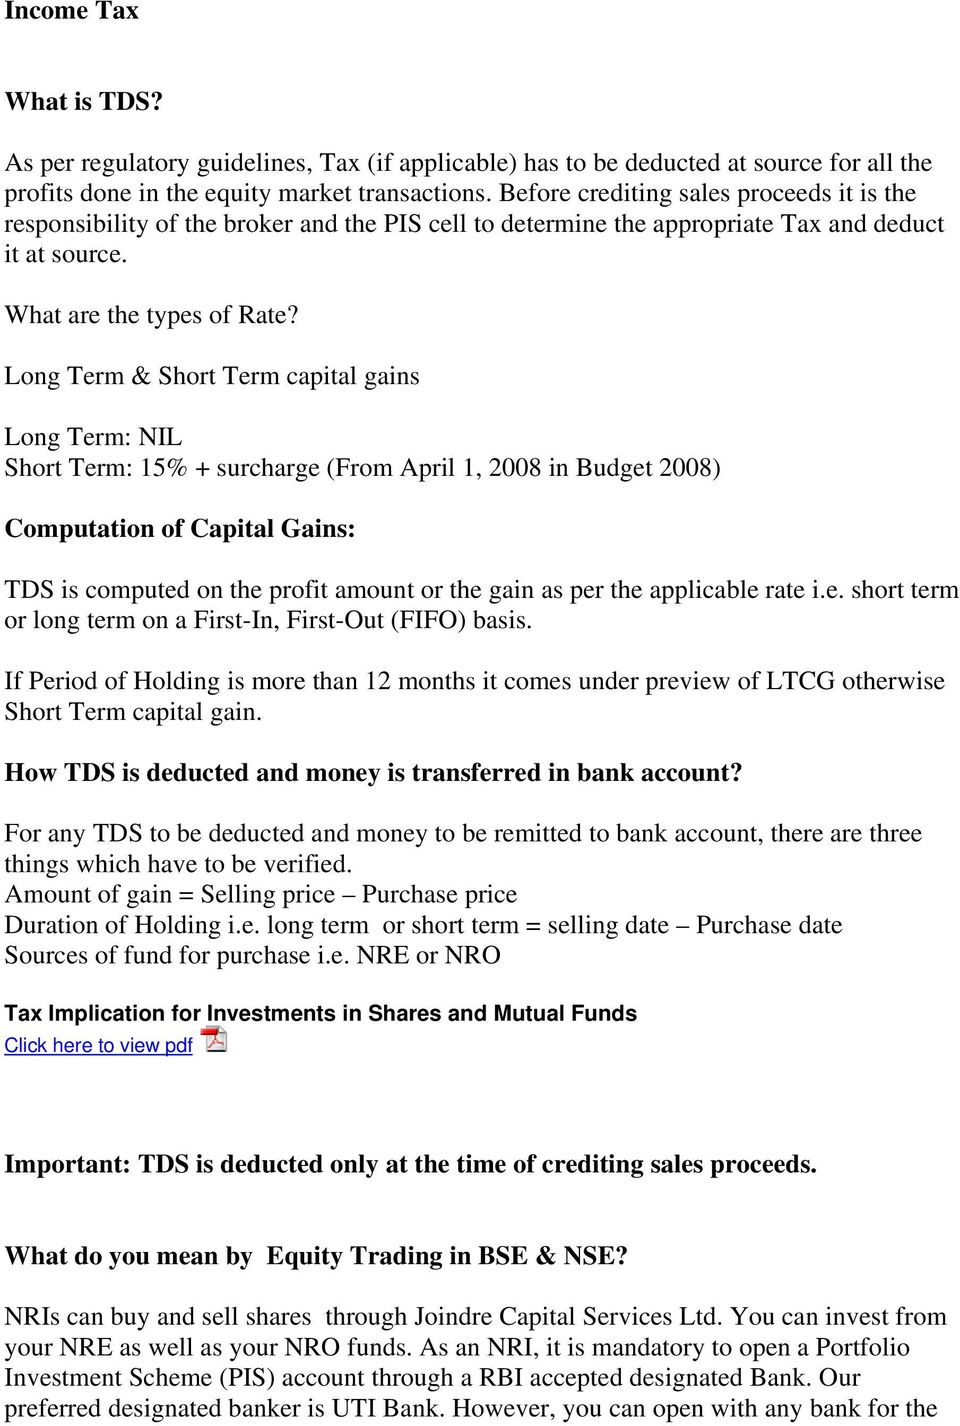 Long Term & Short Term capital gains Long Term: NIL Short Term: 15% + surcharge (From April 1, 2008 in Budget 2008) Computation of Capital Gains: TDS is computed on the profit amount or the gain as